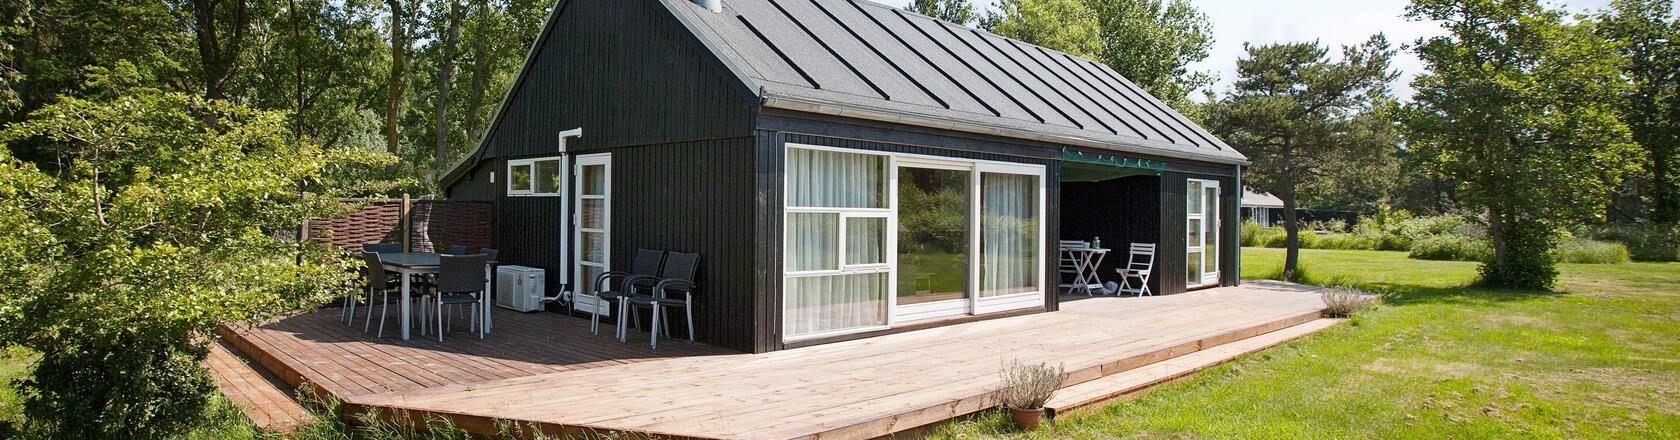 Askø in Denmark — Rent a holiday home with DanCenter